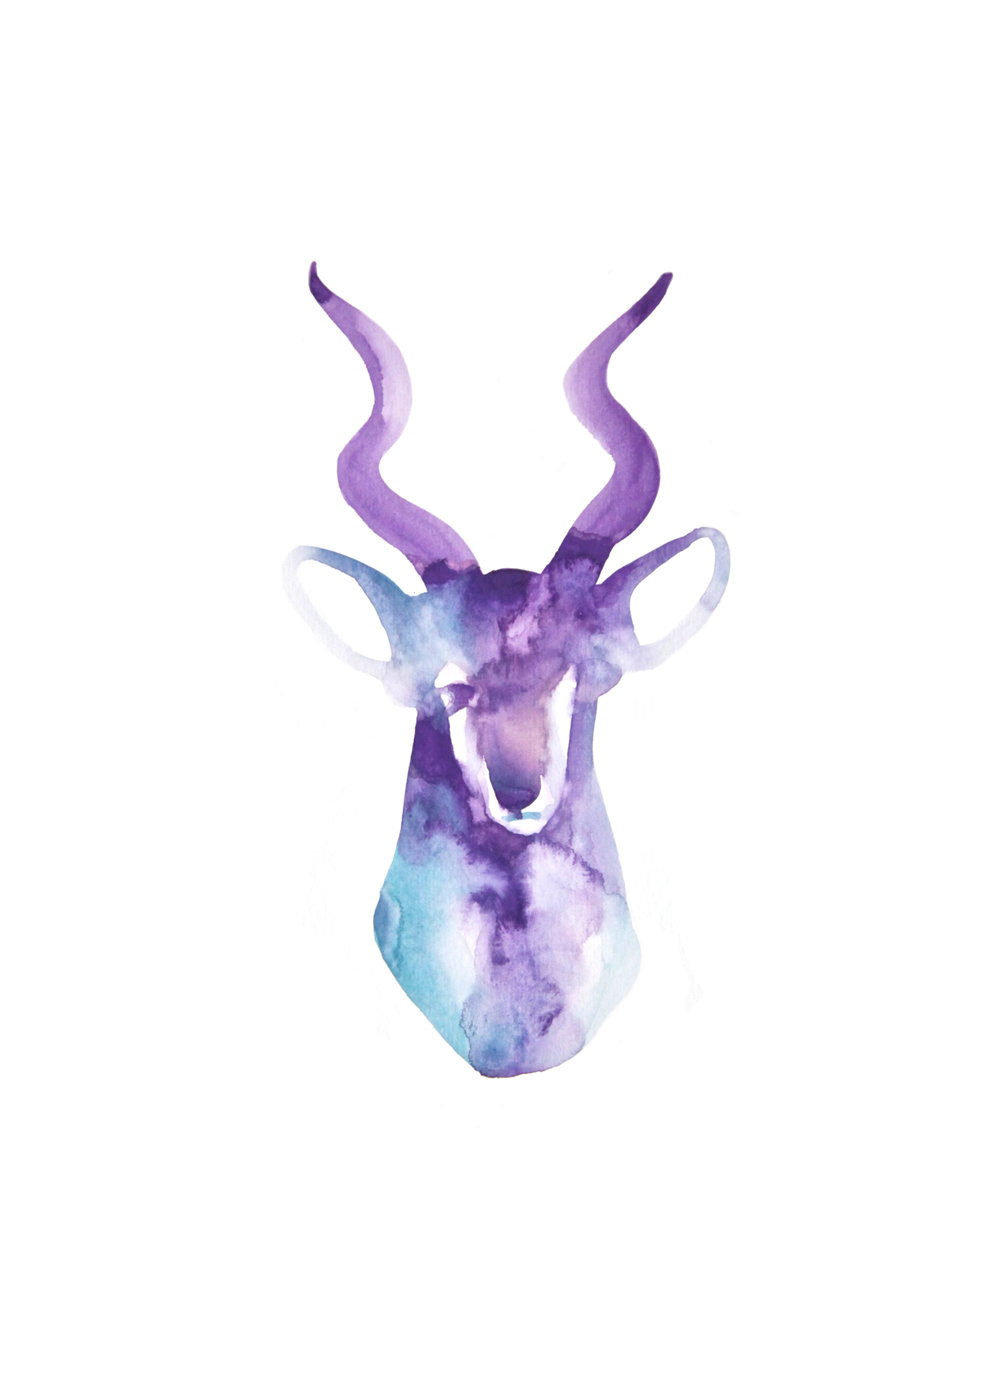 Tête violette-Cerf  , 2016,    watercolor on paper,29,8x41cm, private collection